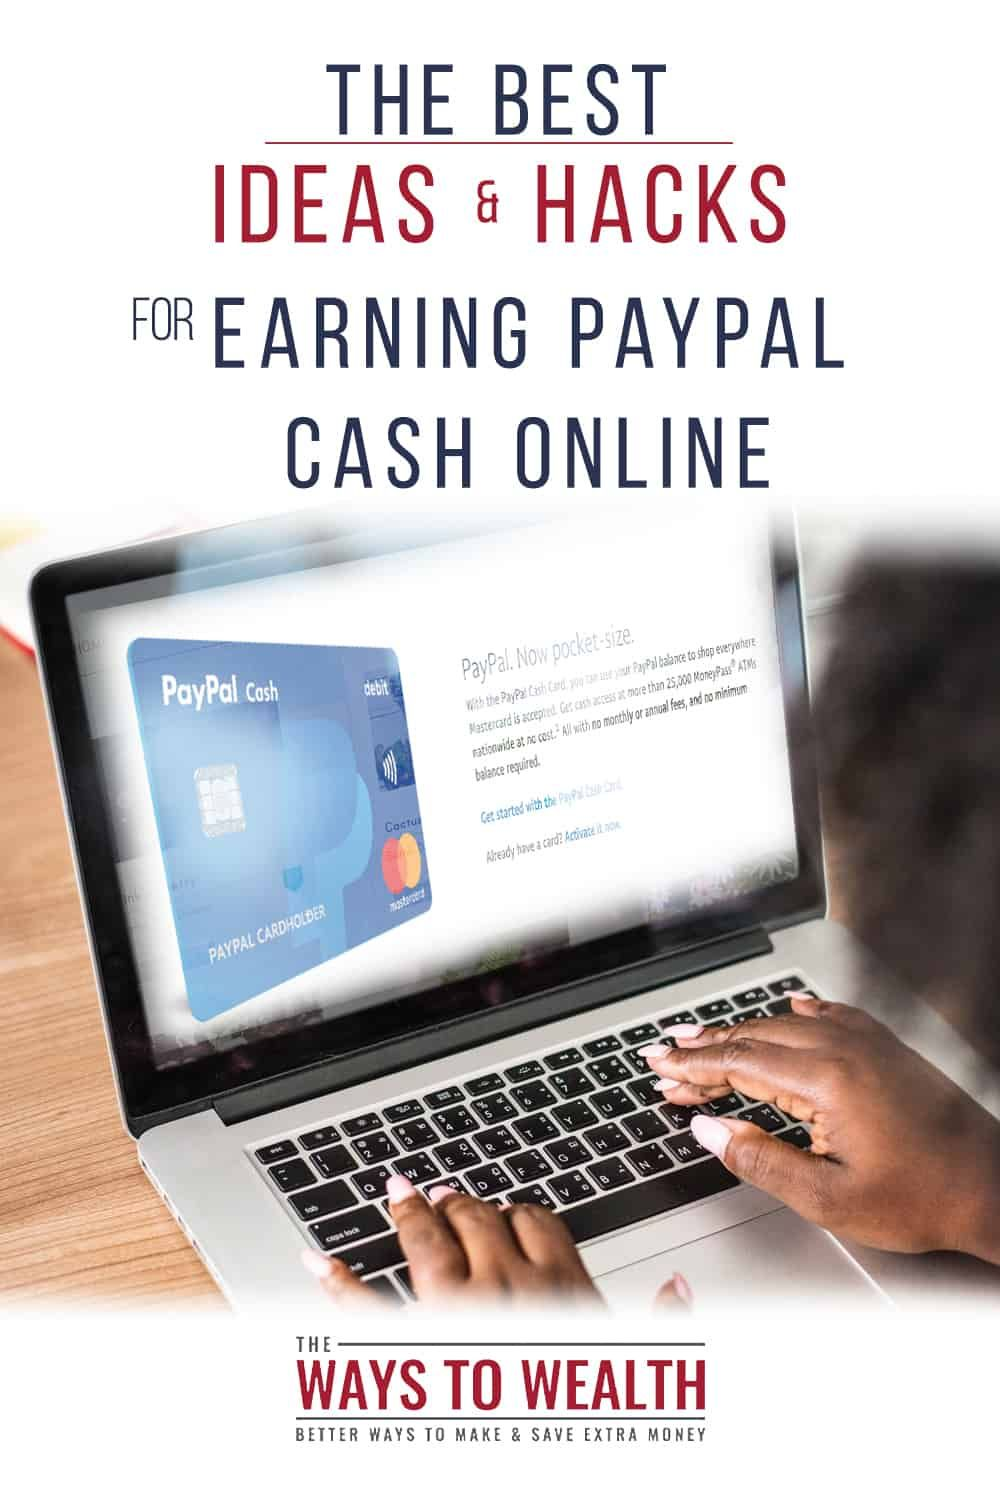 Free PayPal Money Top Reward Sites That Pay PayPay Cash